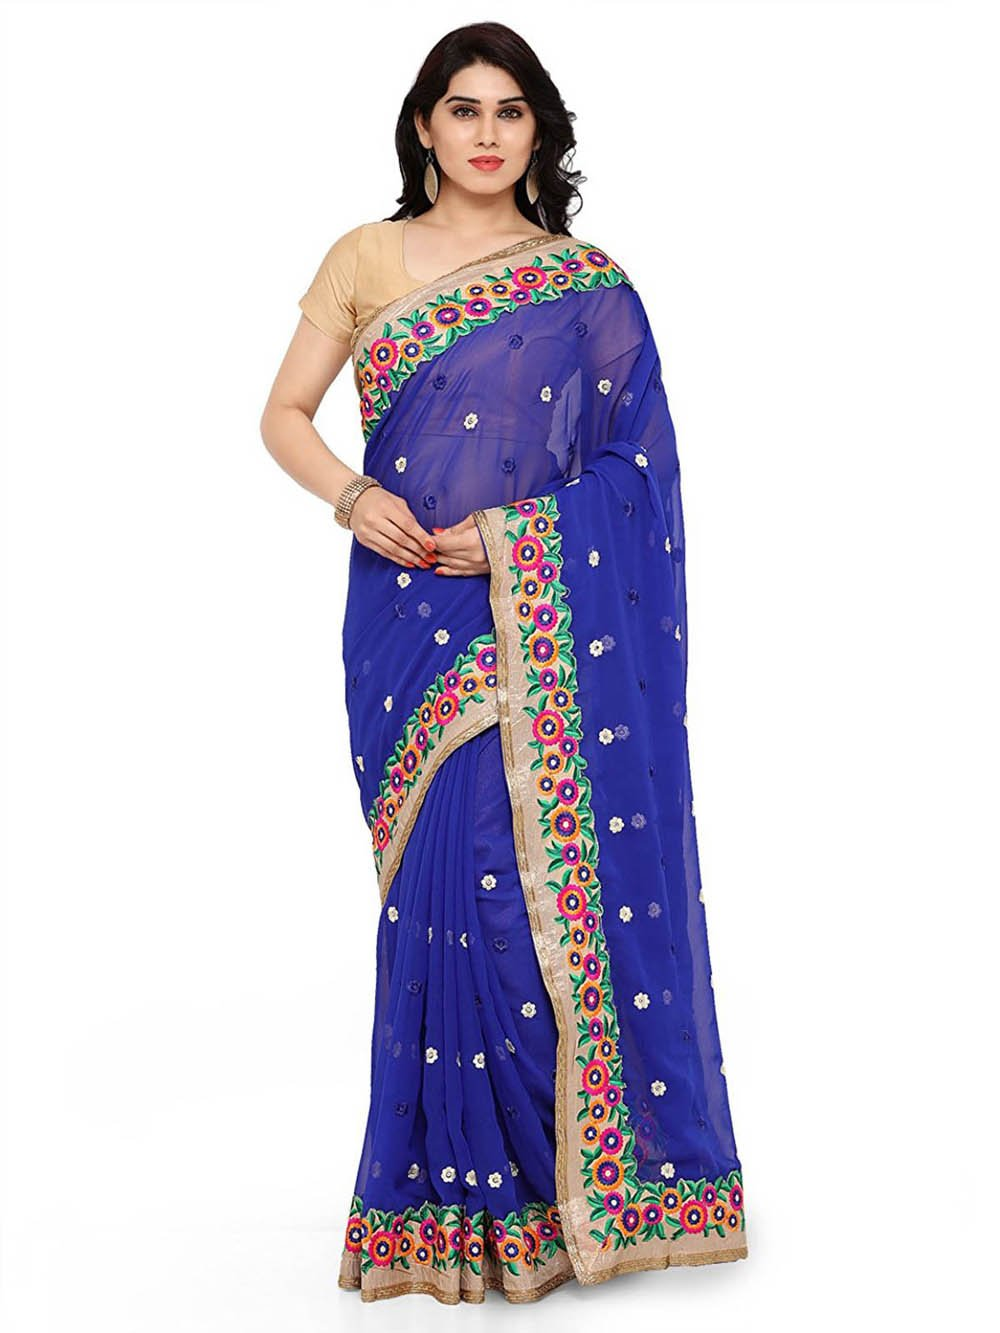 Rewa Enterprises Women's Trendy & Fancy Georgette Designer Saree with Stylish Embroidery for Party Wear/Daily Wear, Blue